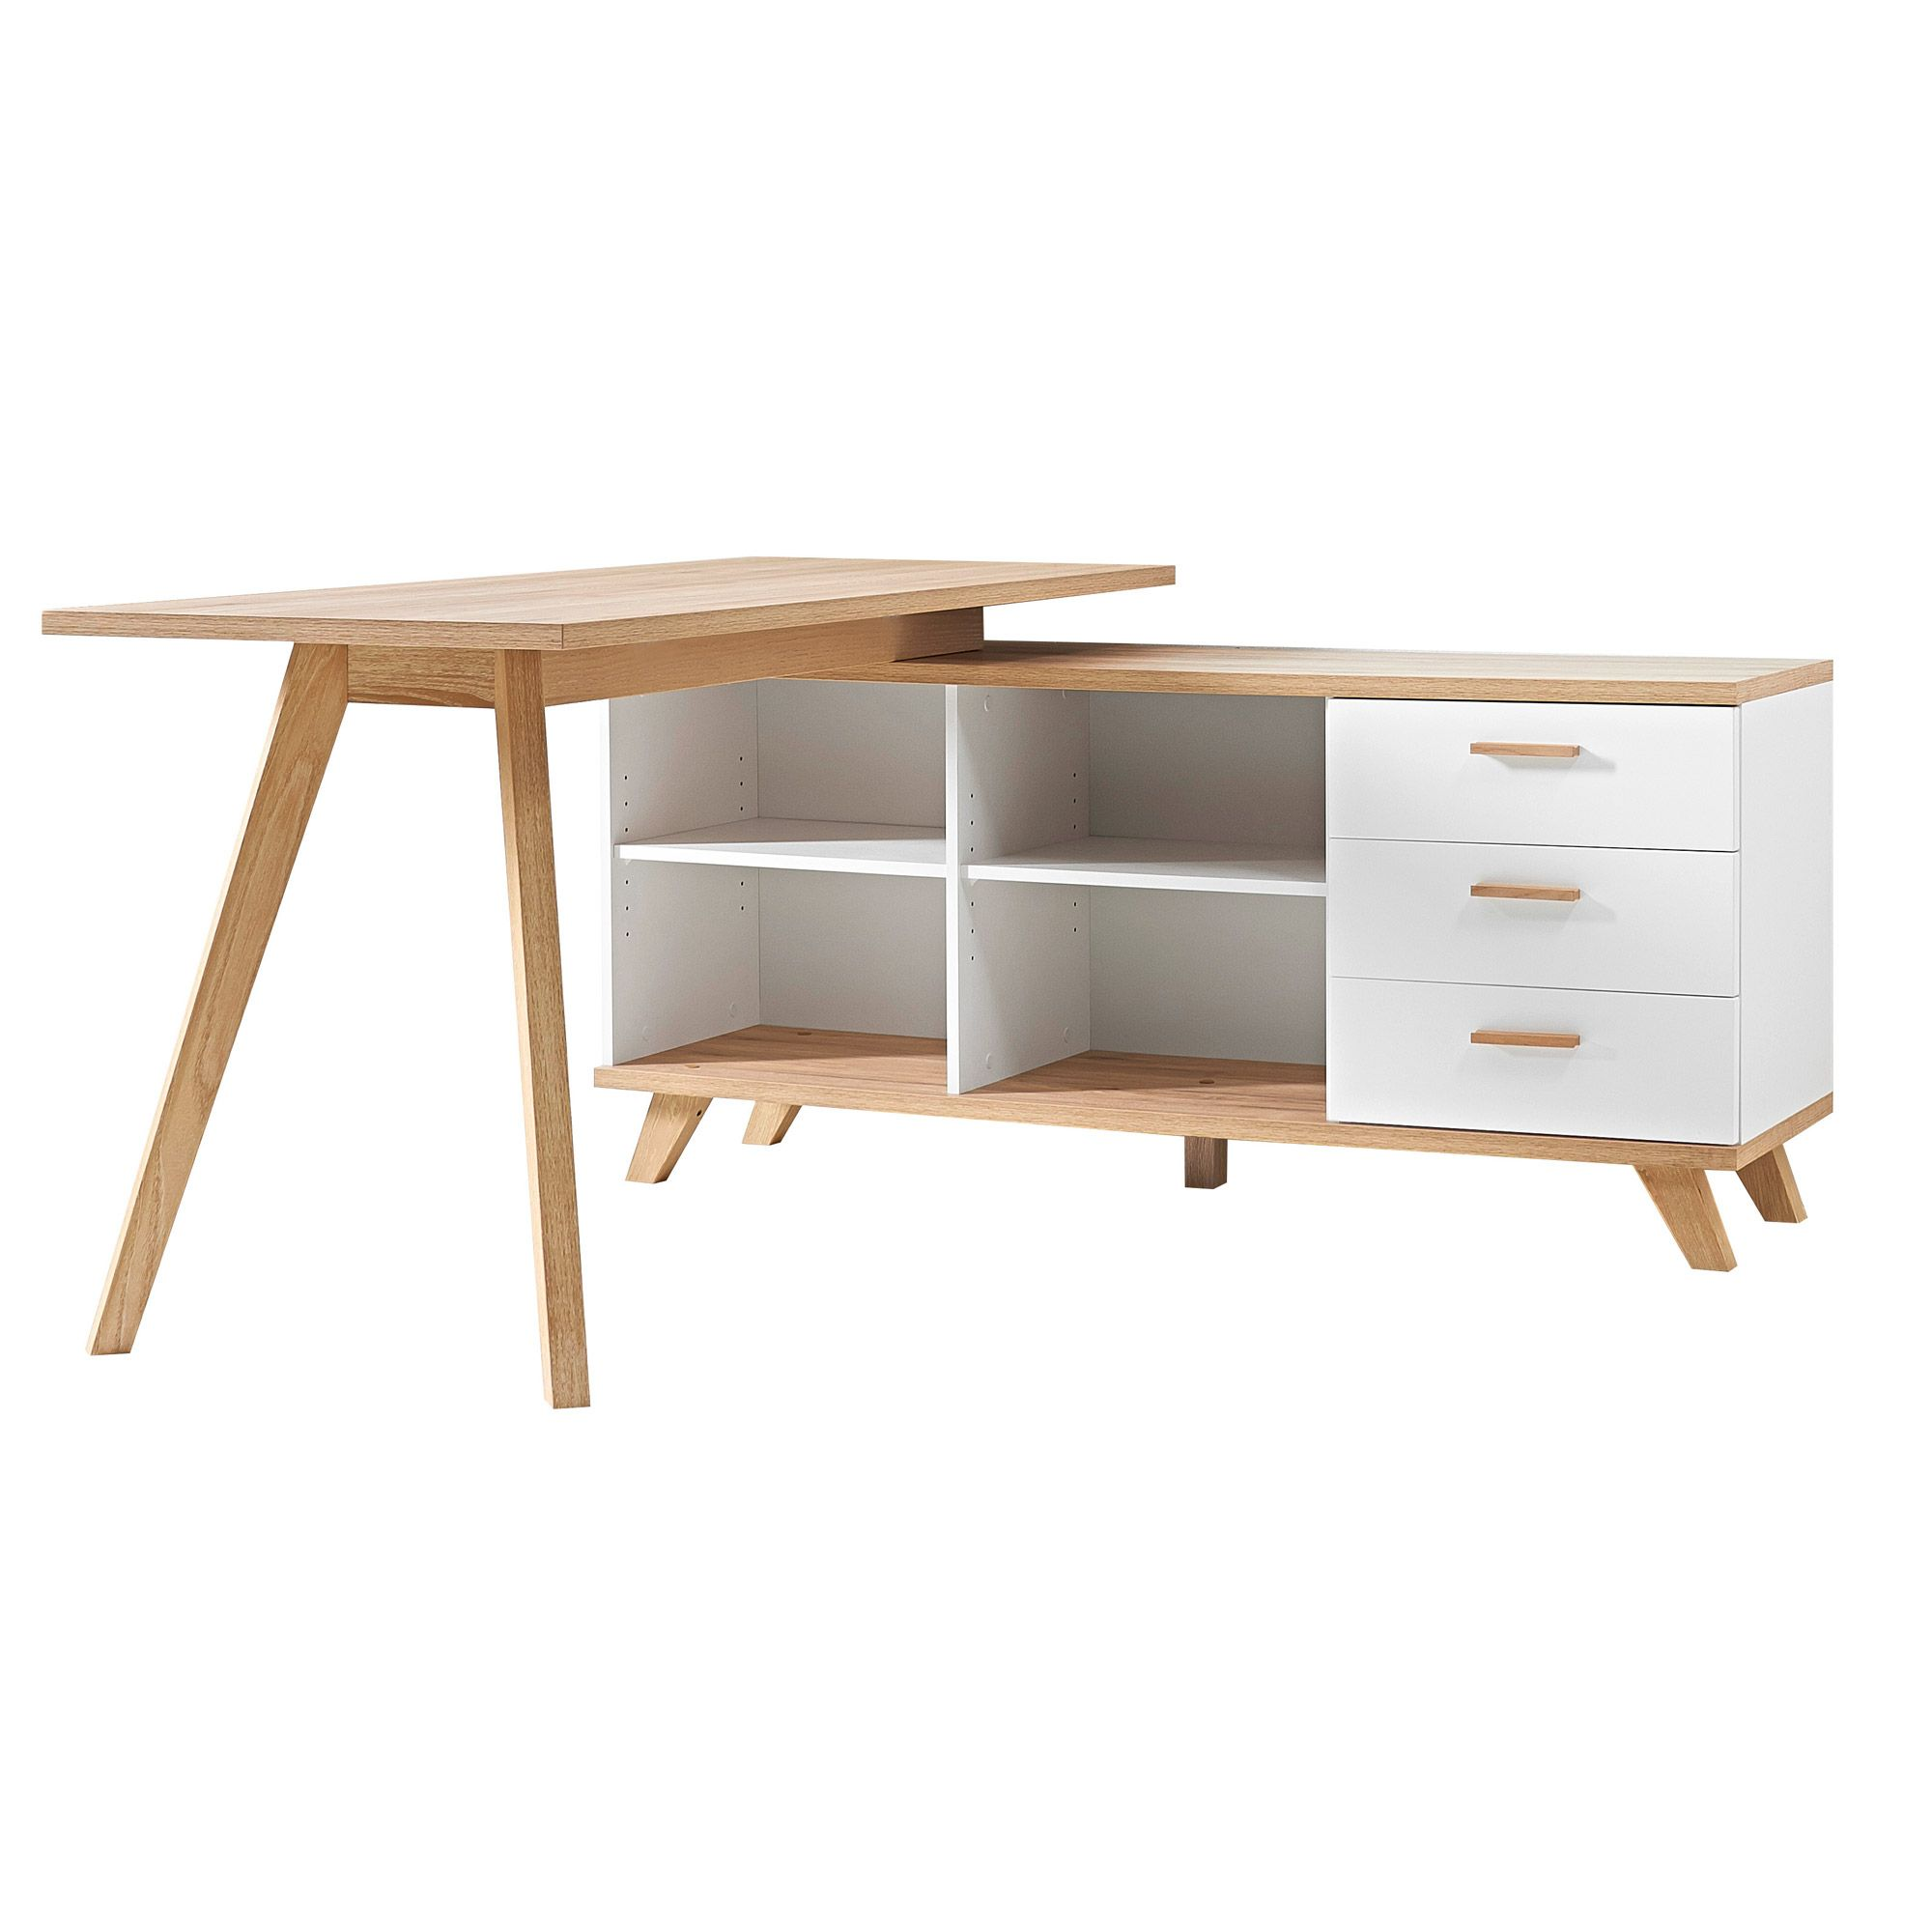 bureau d 39 angle en bois avec 4 niches 3 tiroirs oslo. Black Bedroom Furniture Sets. Home Design Ideas